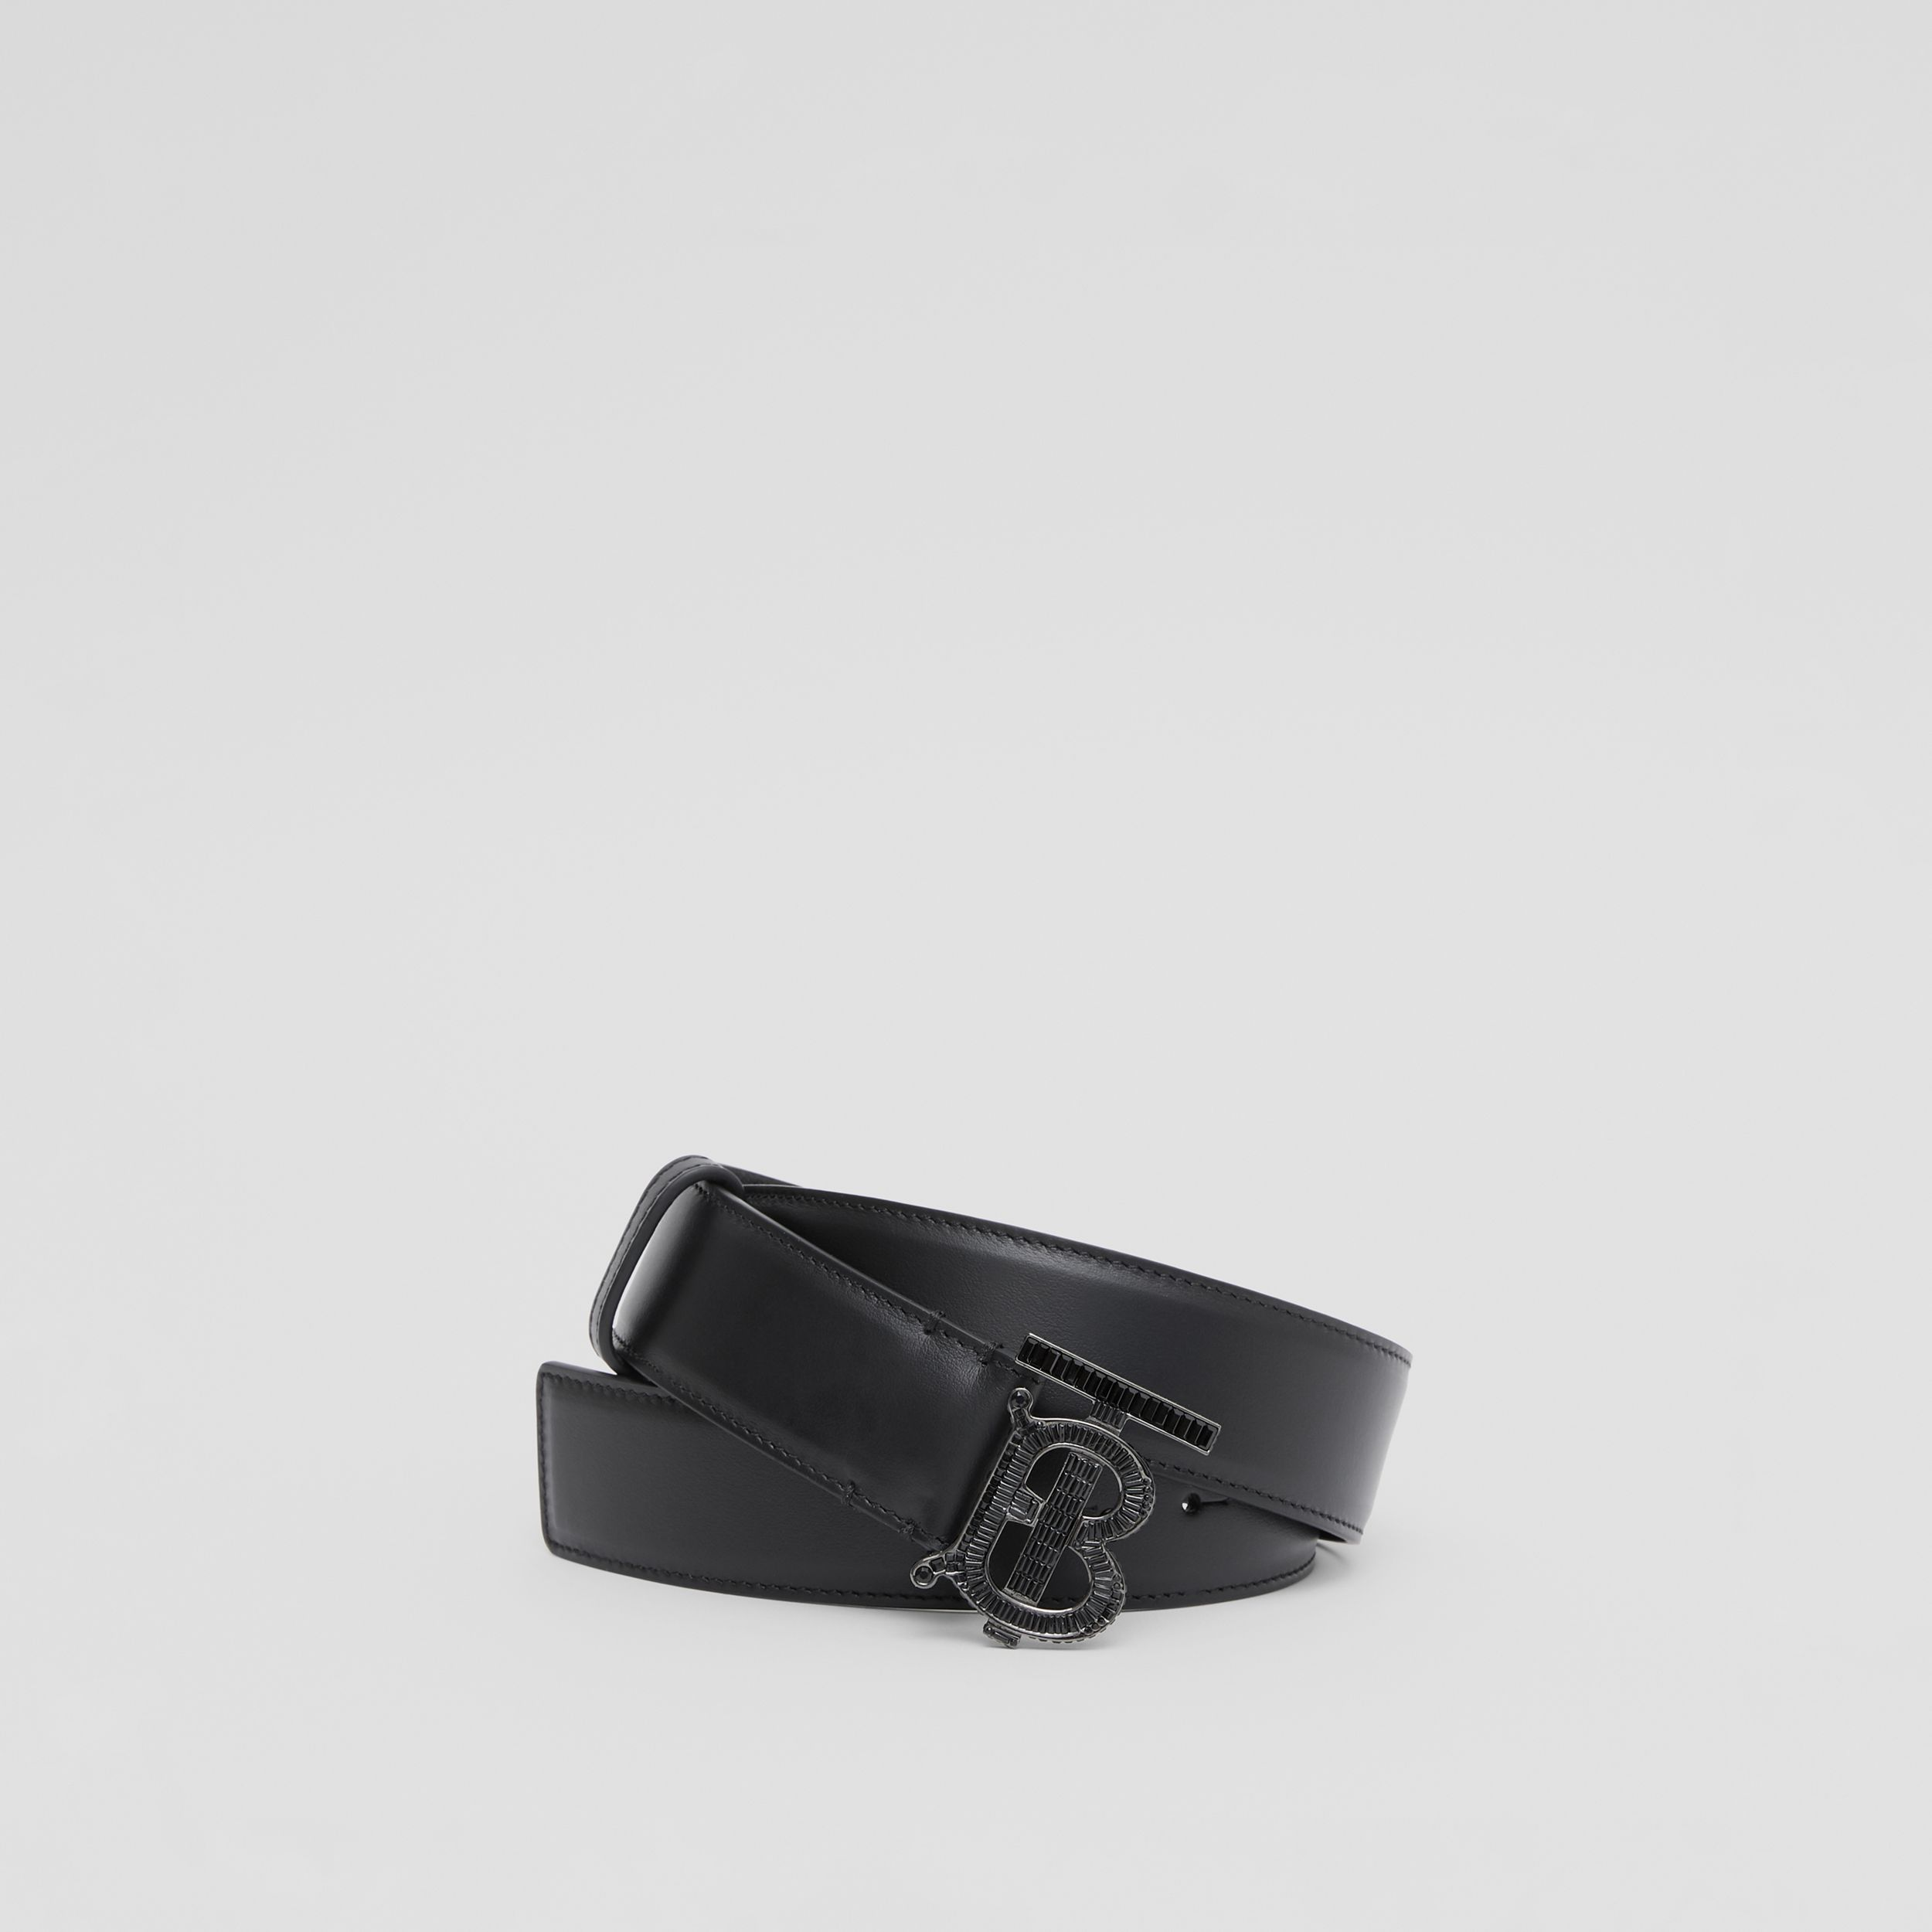 Crystal Monogram Motif Leather Belt in Black - Women | Burberry - 1